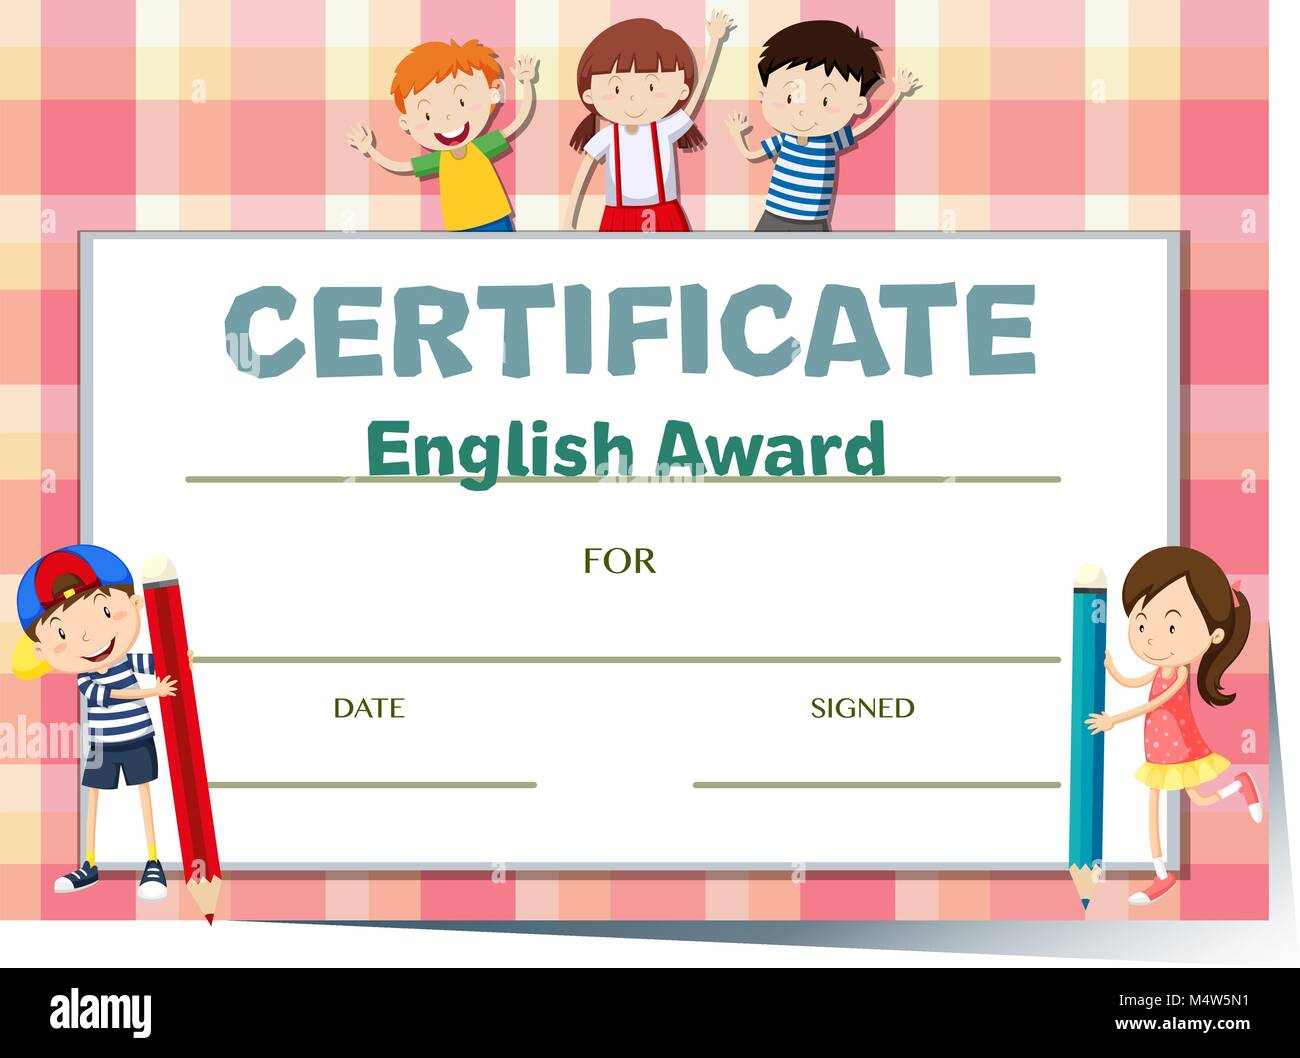 Certificate Template For English Award With Many Kids Illustration